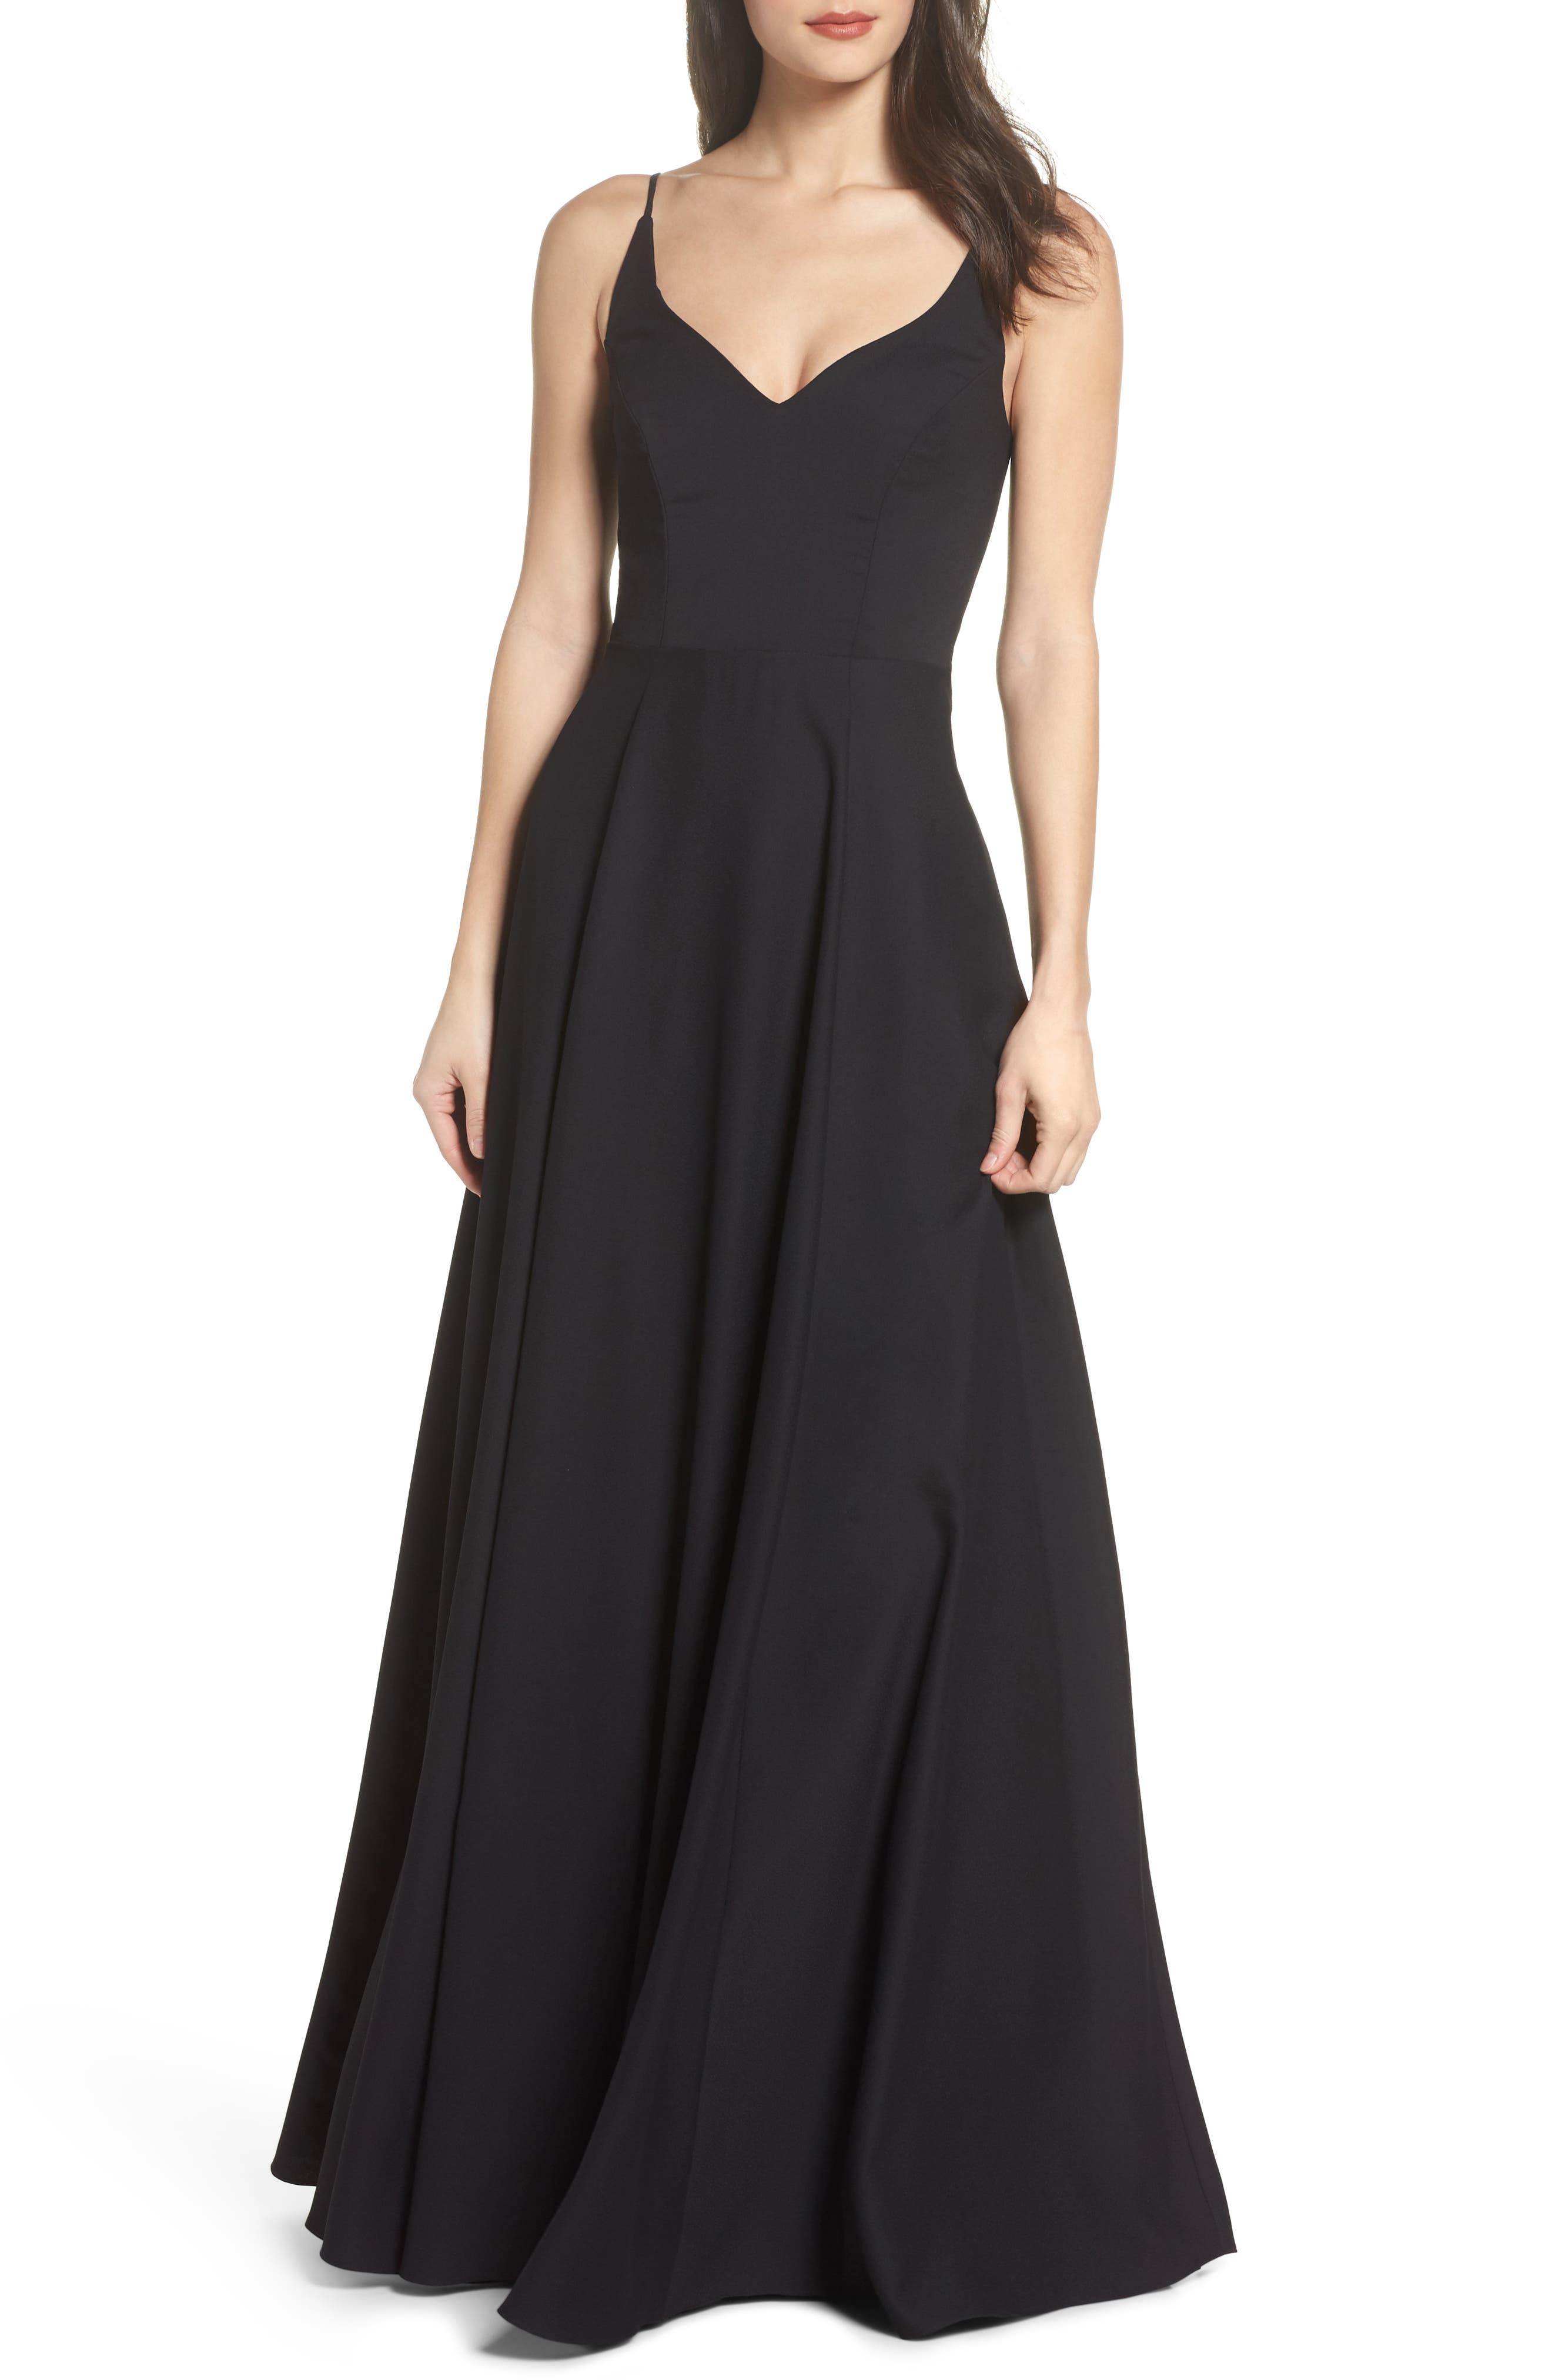 Alternate Image 1 Selected - Hayley Paige Occasions Cutout Crepe A-Line Gown